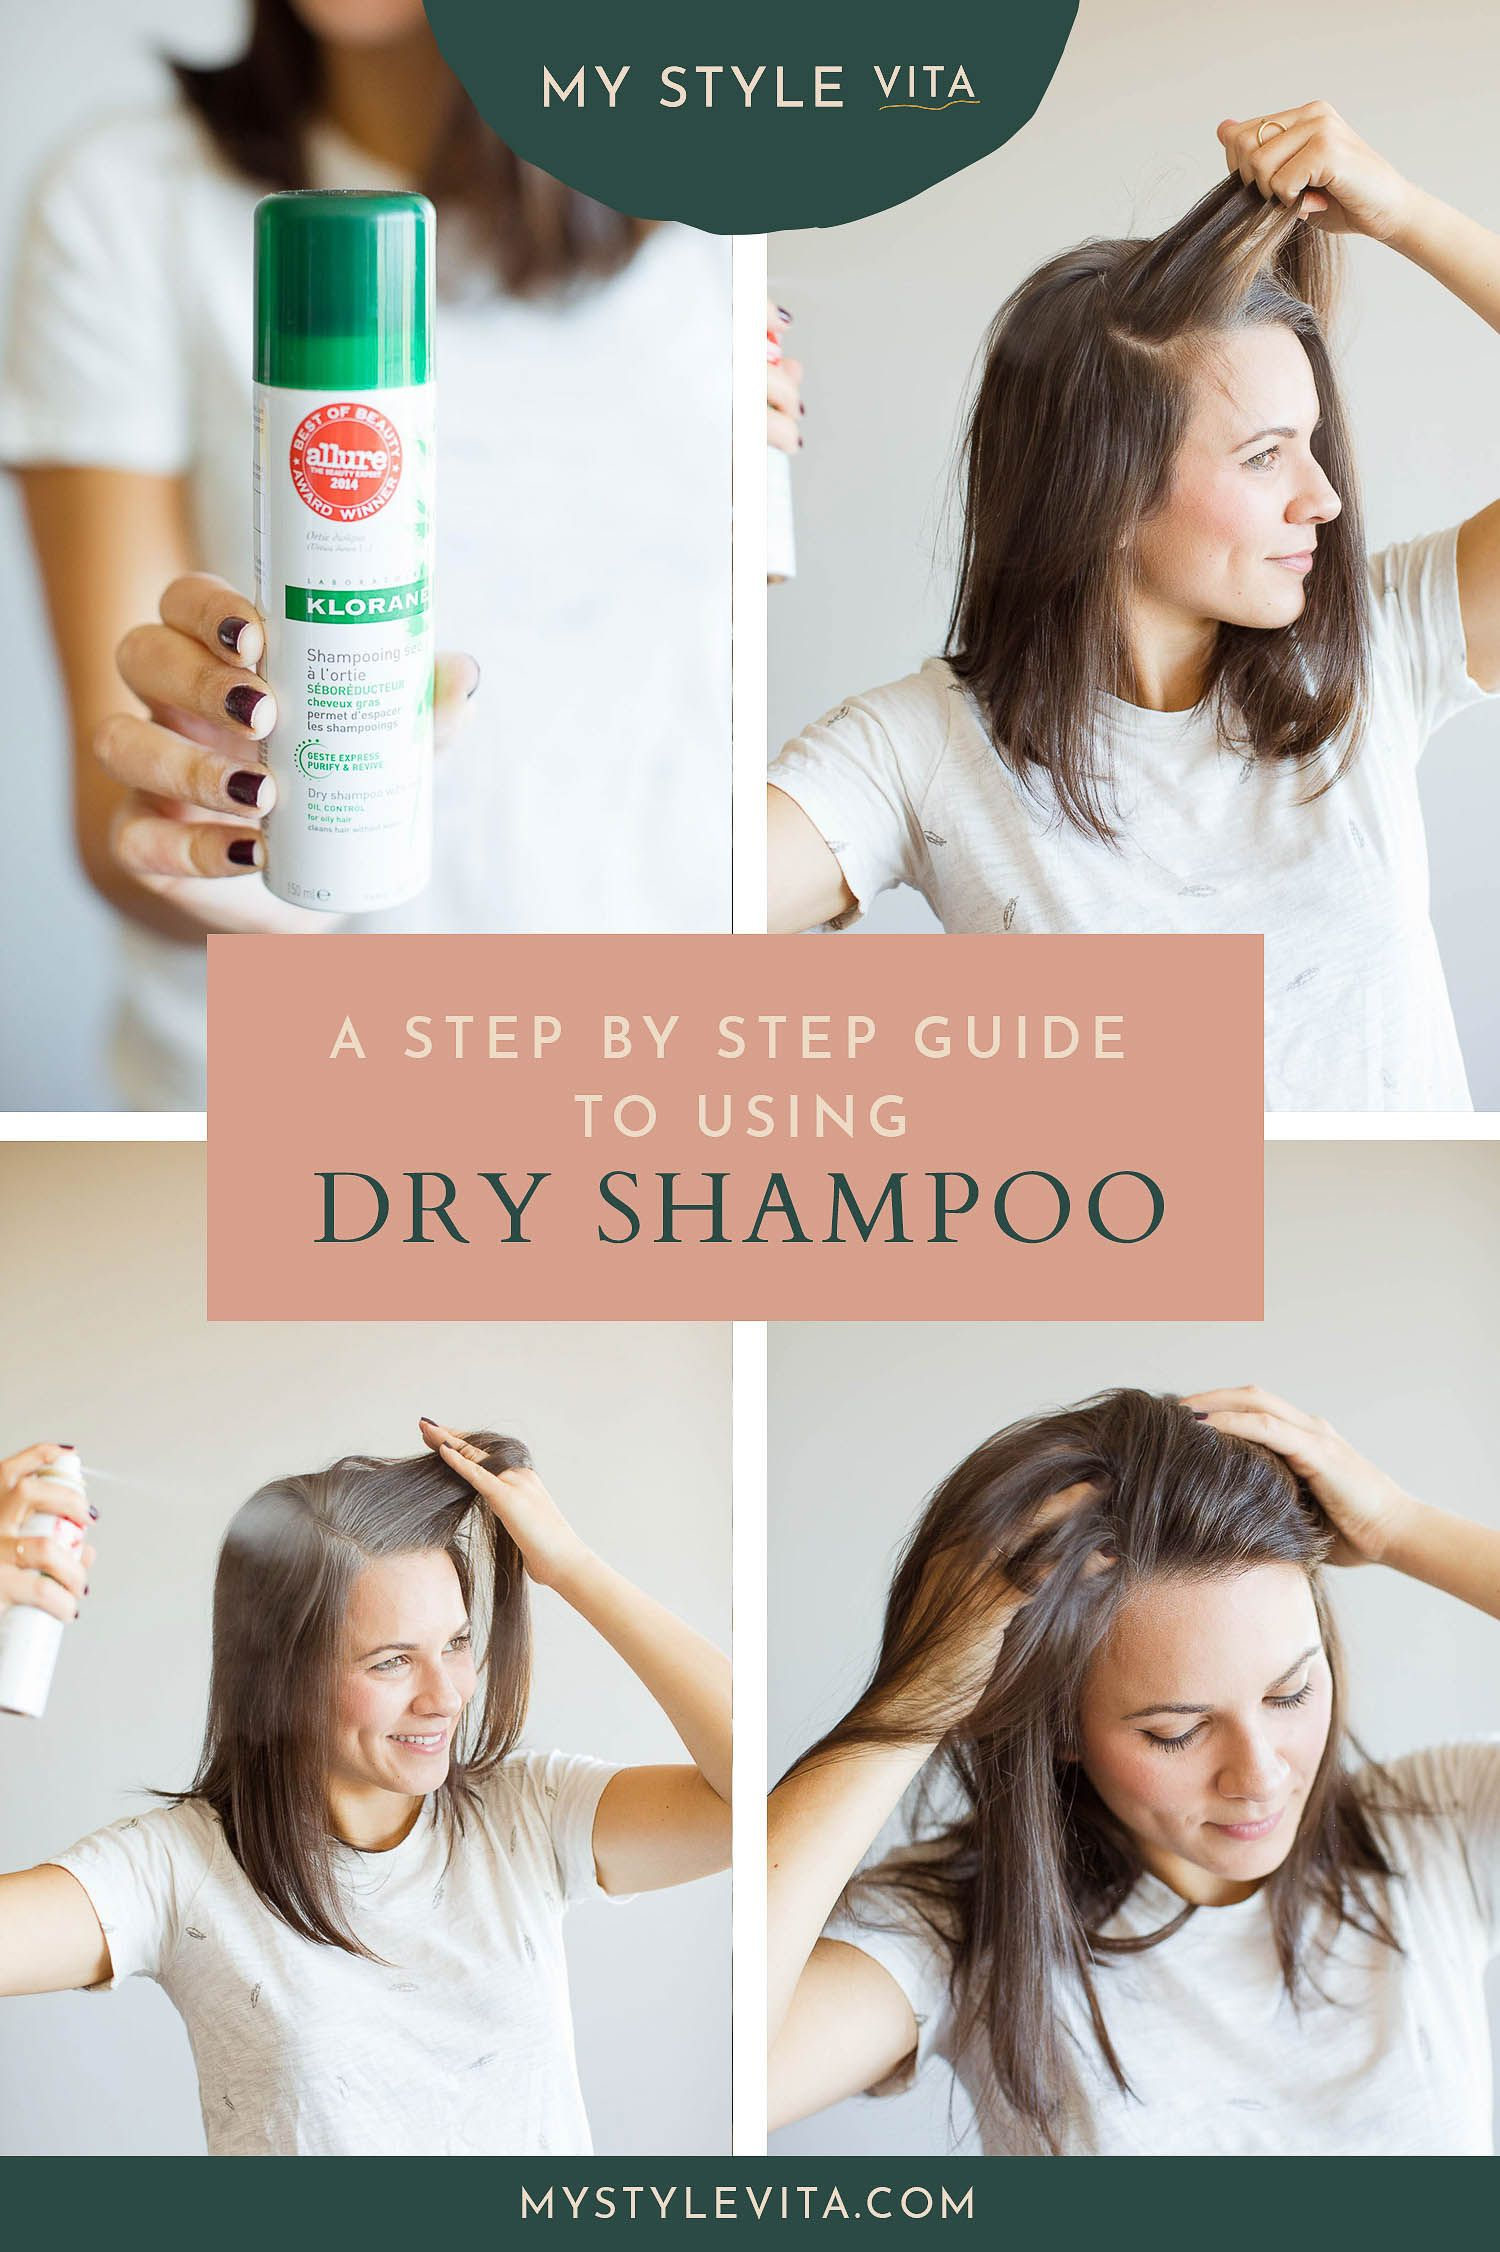 How To Properly Use Dry Shampoo My Favorite Dry Shampoo My Style Vita Using Dry Shampoo Dry Shampoo Green Hair Care